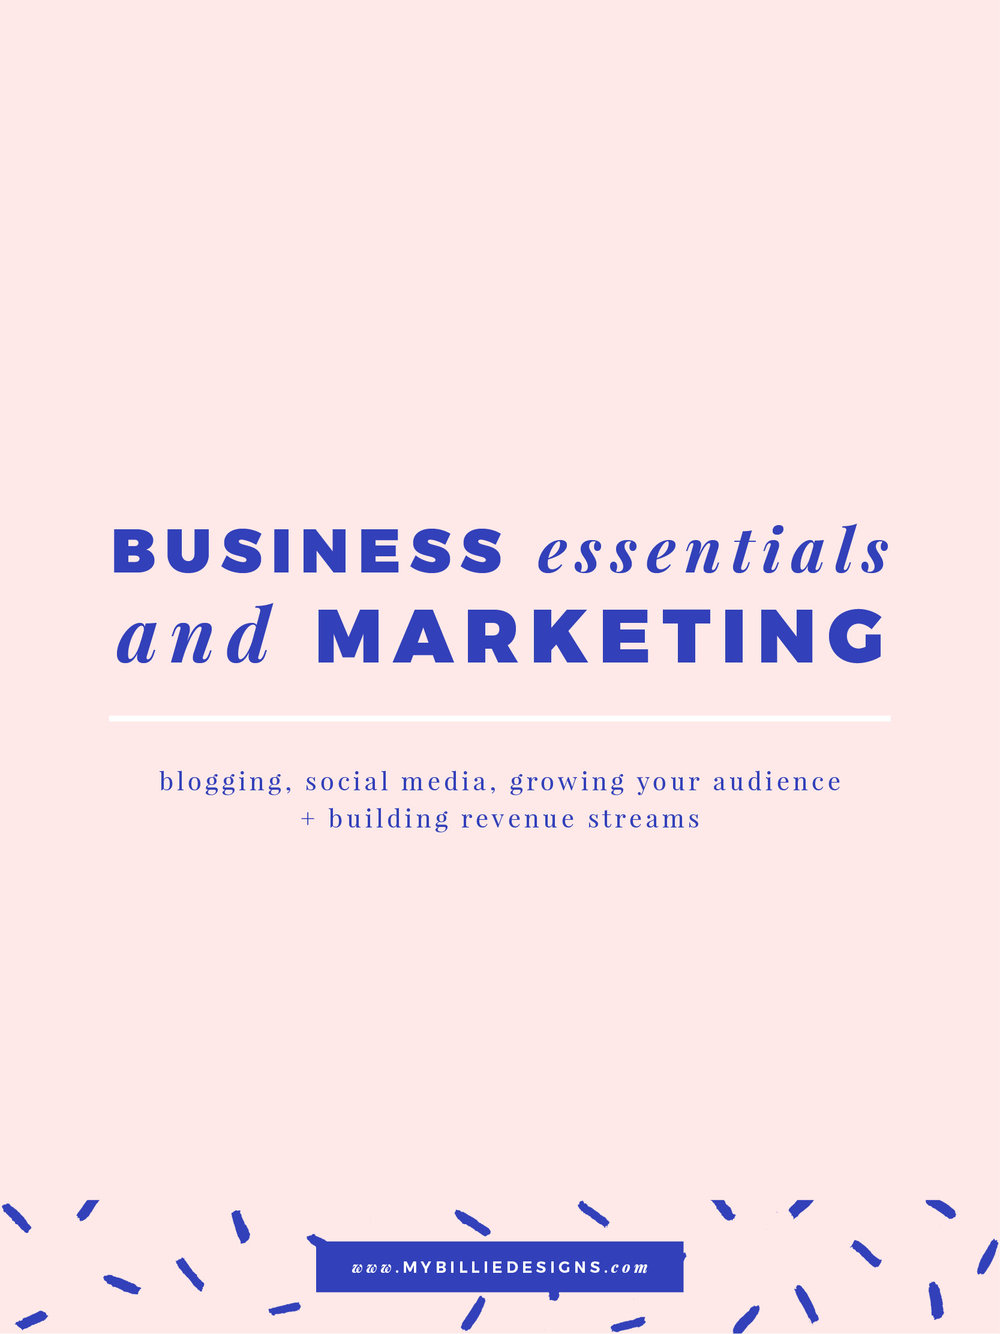 blogging social media growing your audience and building revenue streams